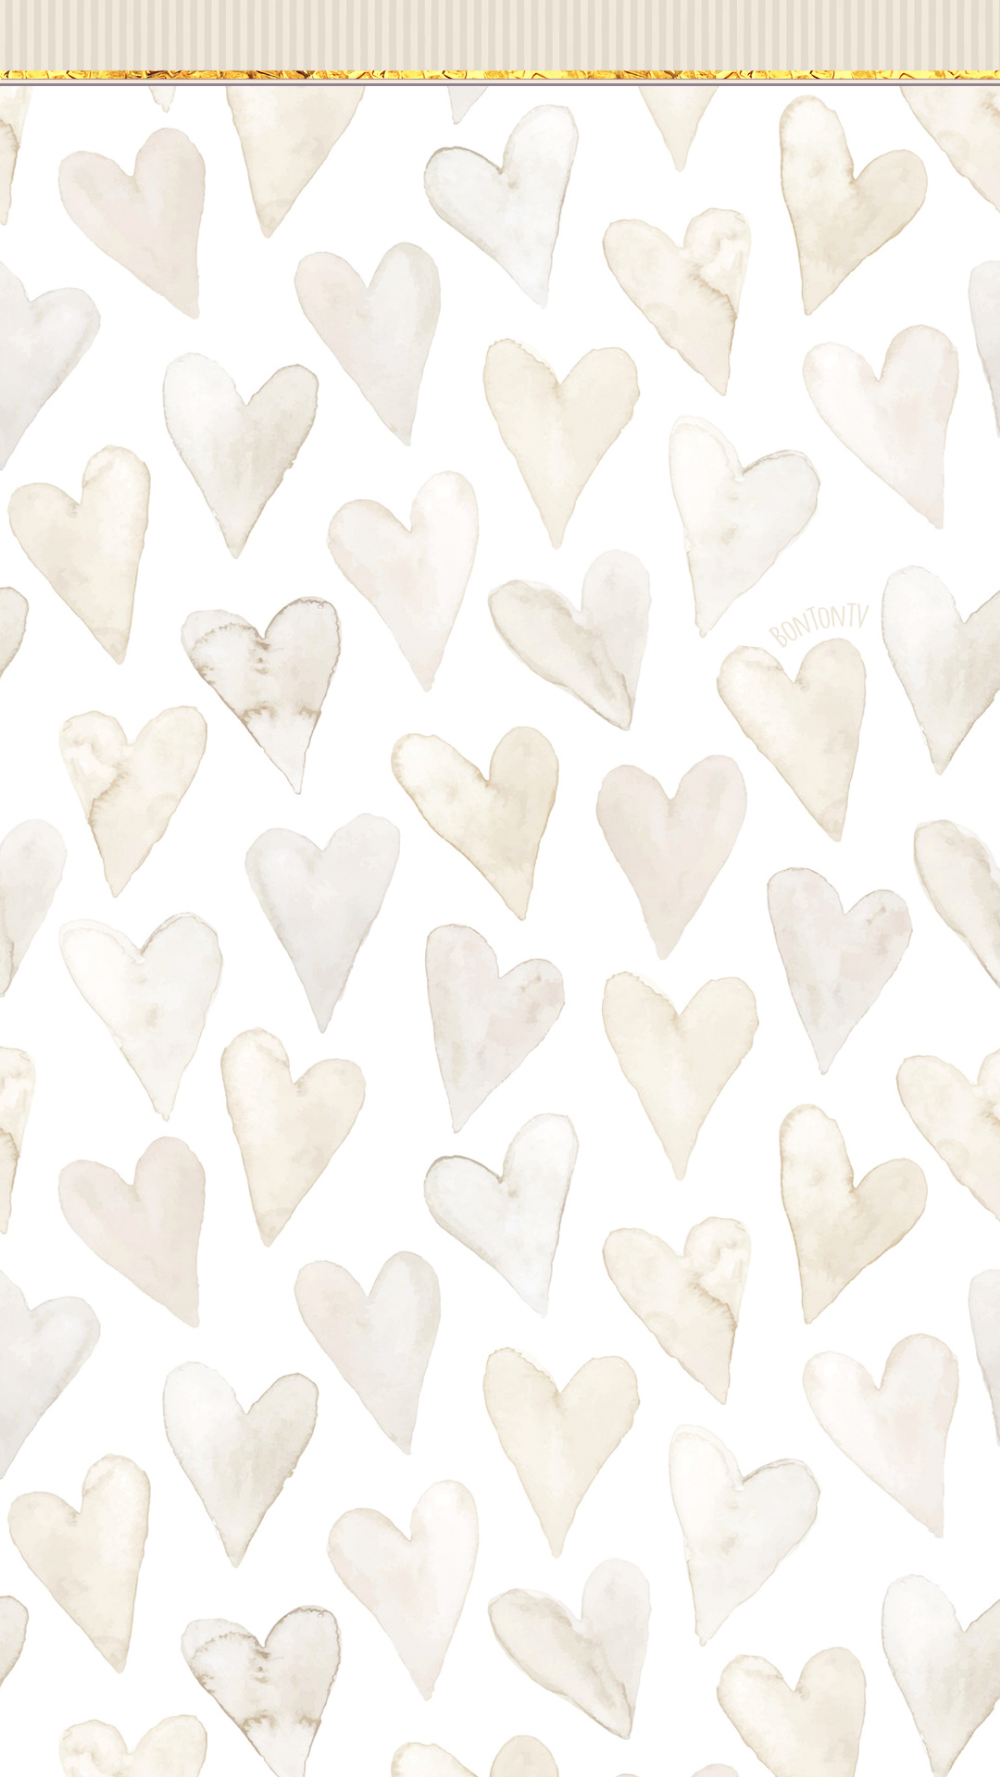 Phone Wallpapers HD Beige Neutral Hearts simplistic by